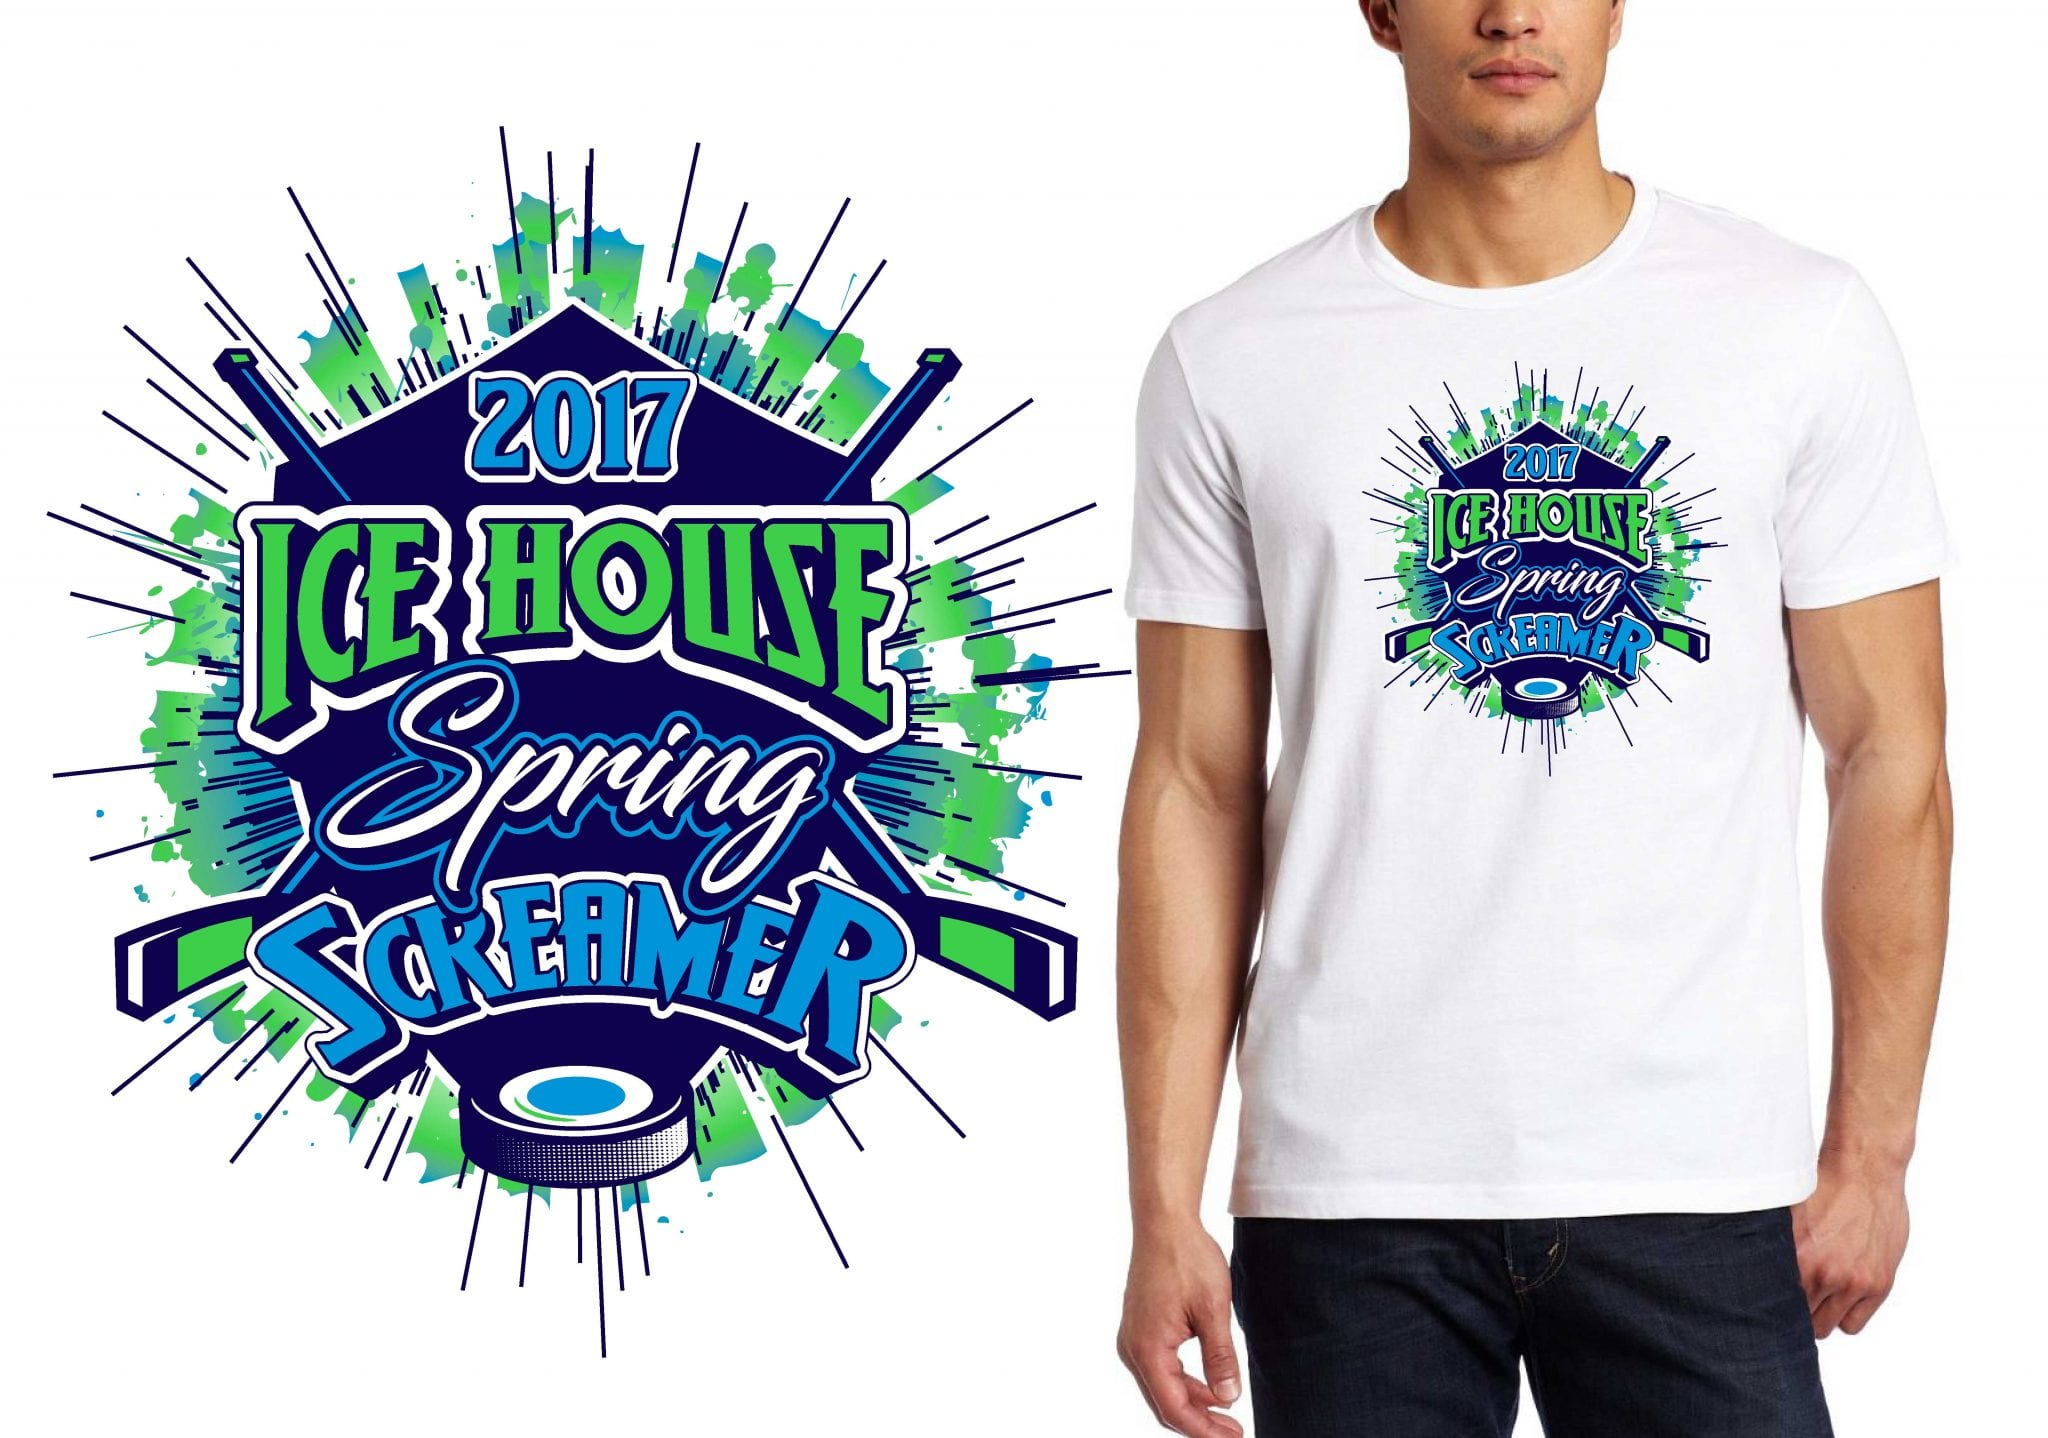 HOCKEY LOGO for Ice-House-Spring-Screamer T-SHIRT UrArtStudio